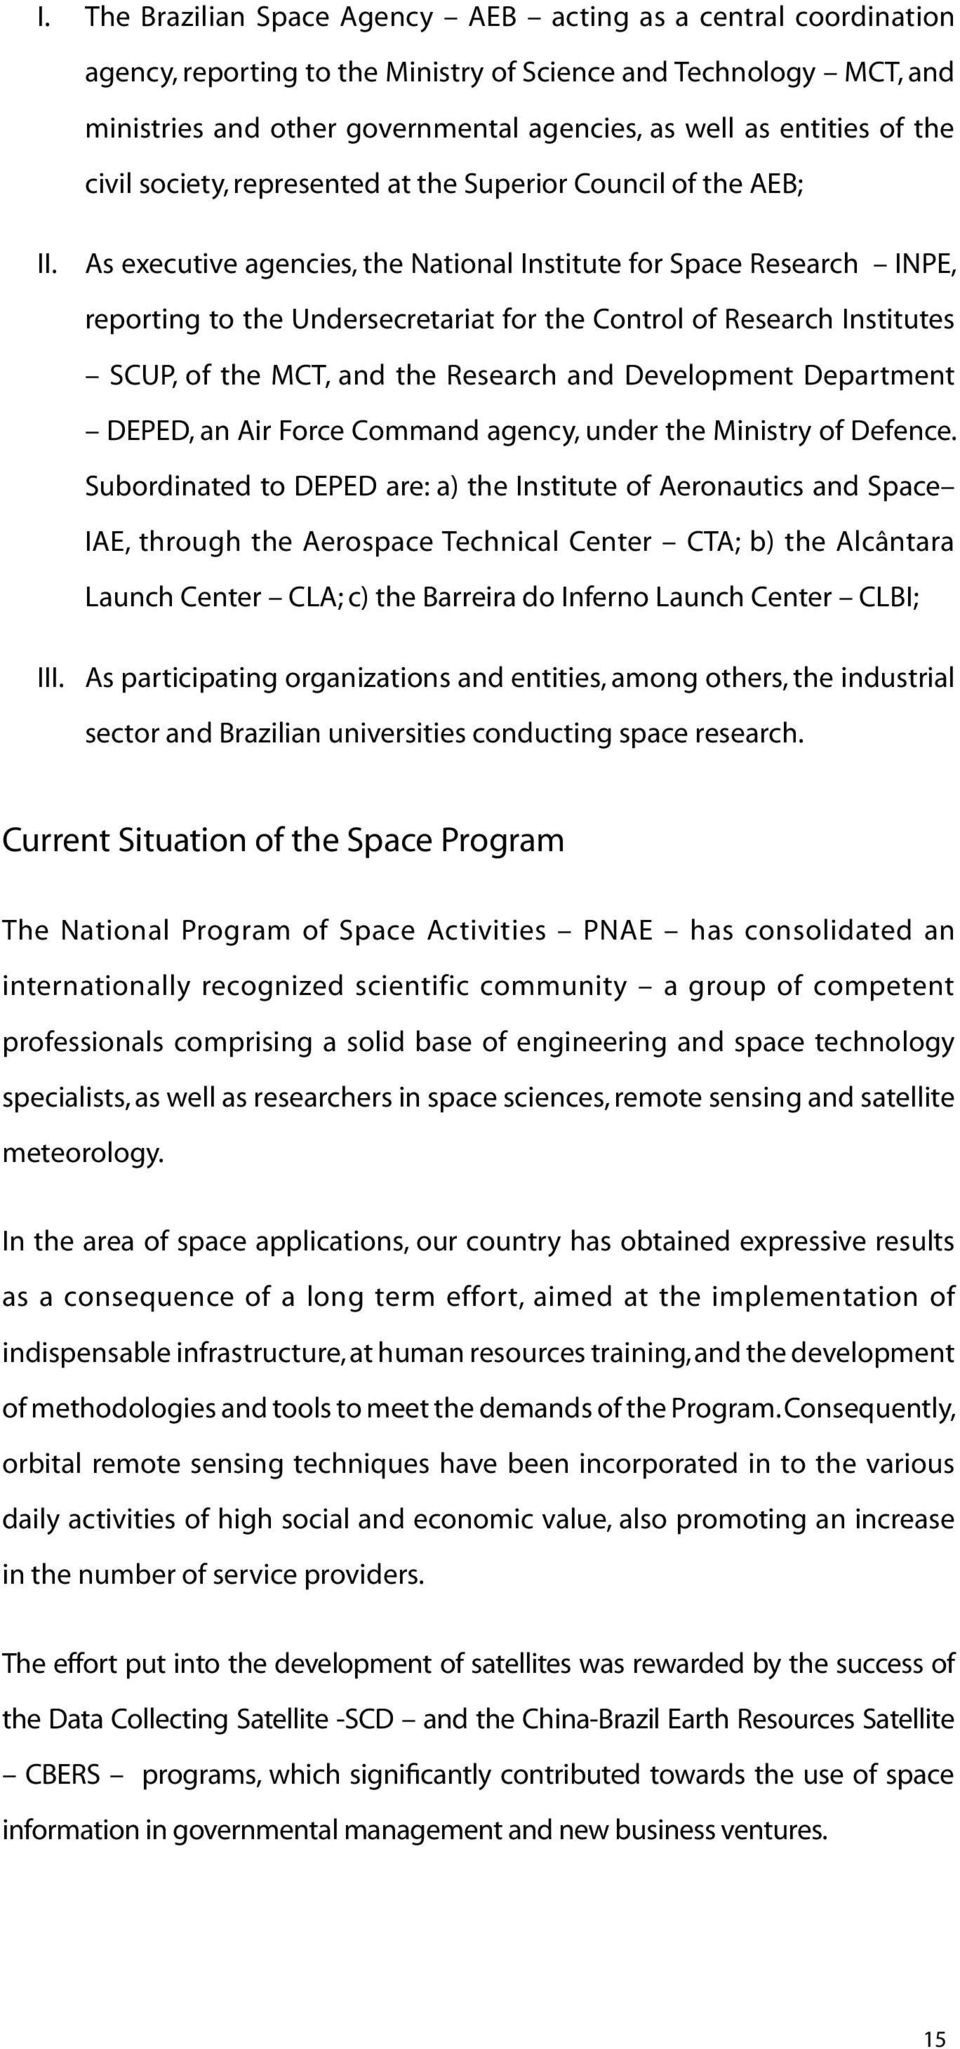 As executive agencies, the National Institute for Space Research INPE, reporting to the Undersecretariat for the Control of Research Institutes SCUP, of the MCT, and the Research and Development